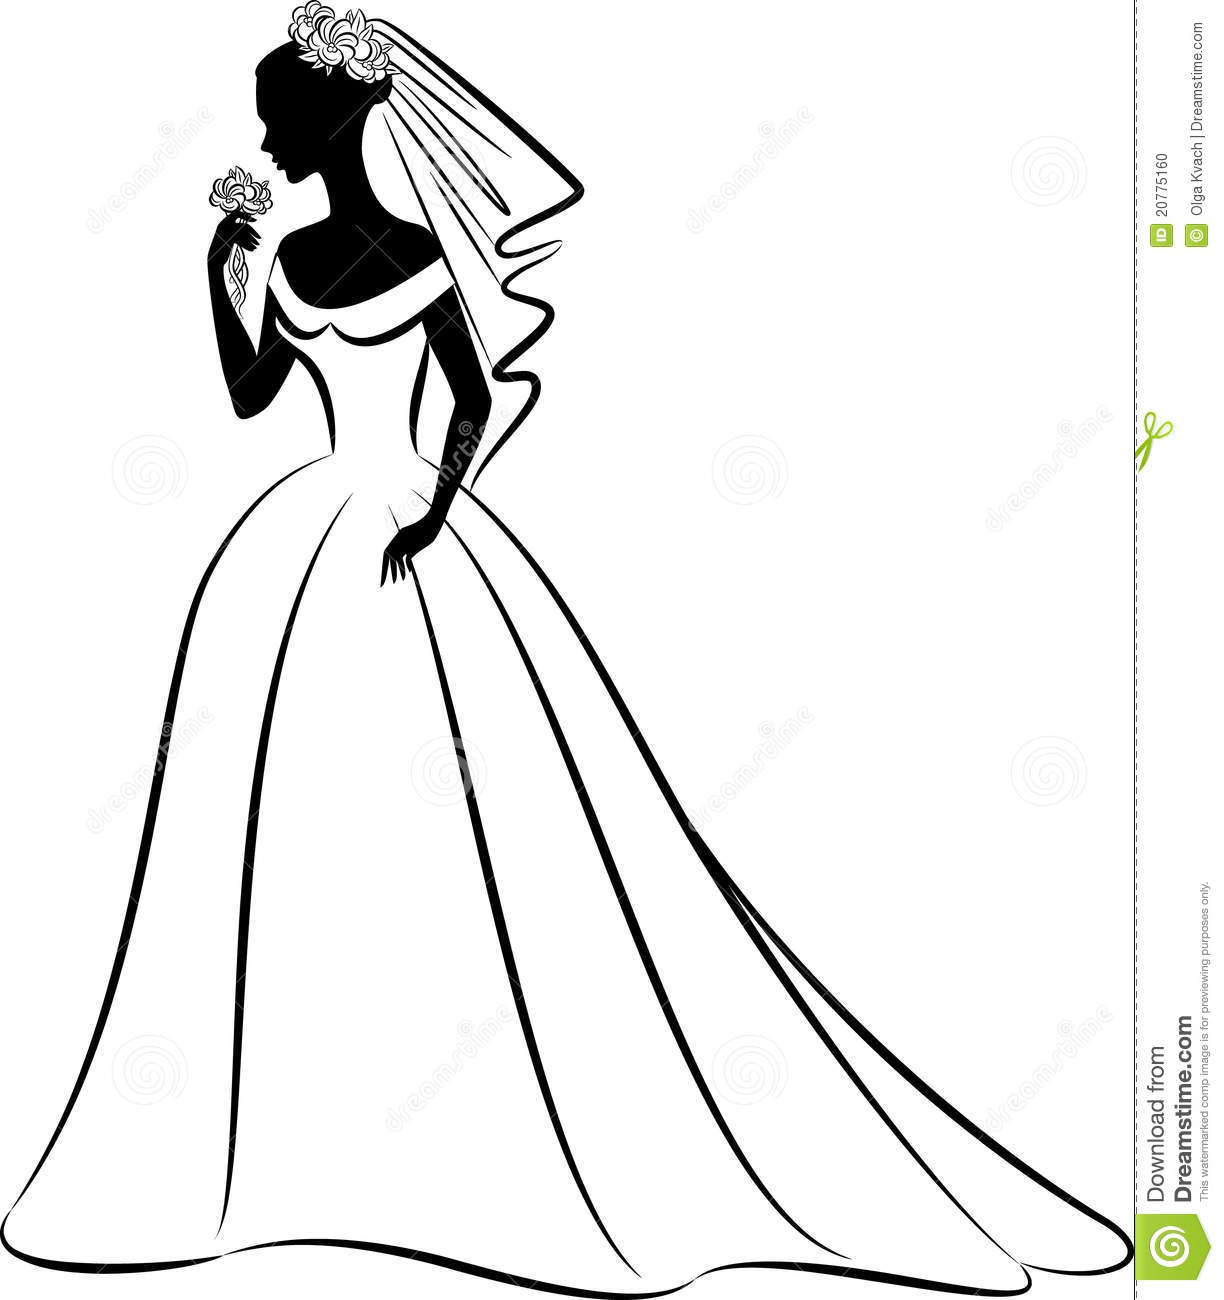 Free Bridal Clipart.png, Download Free Clip Art, Free Clip.